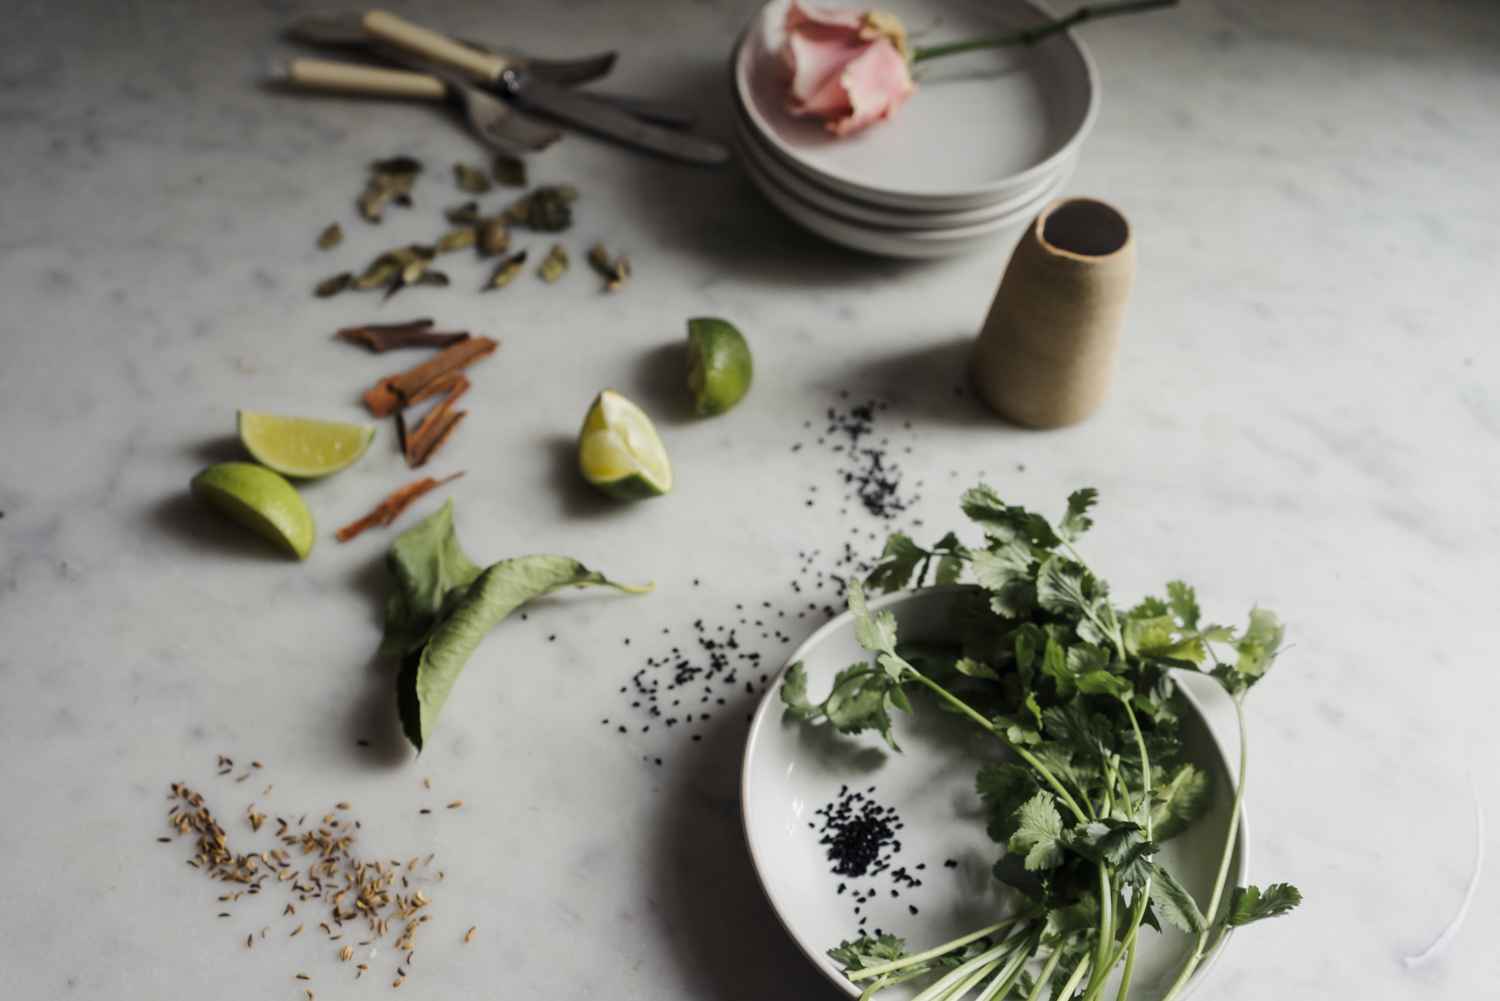 A romantic meal for two at home | Seeds and Stitches blog